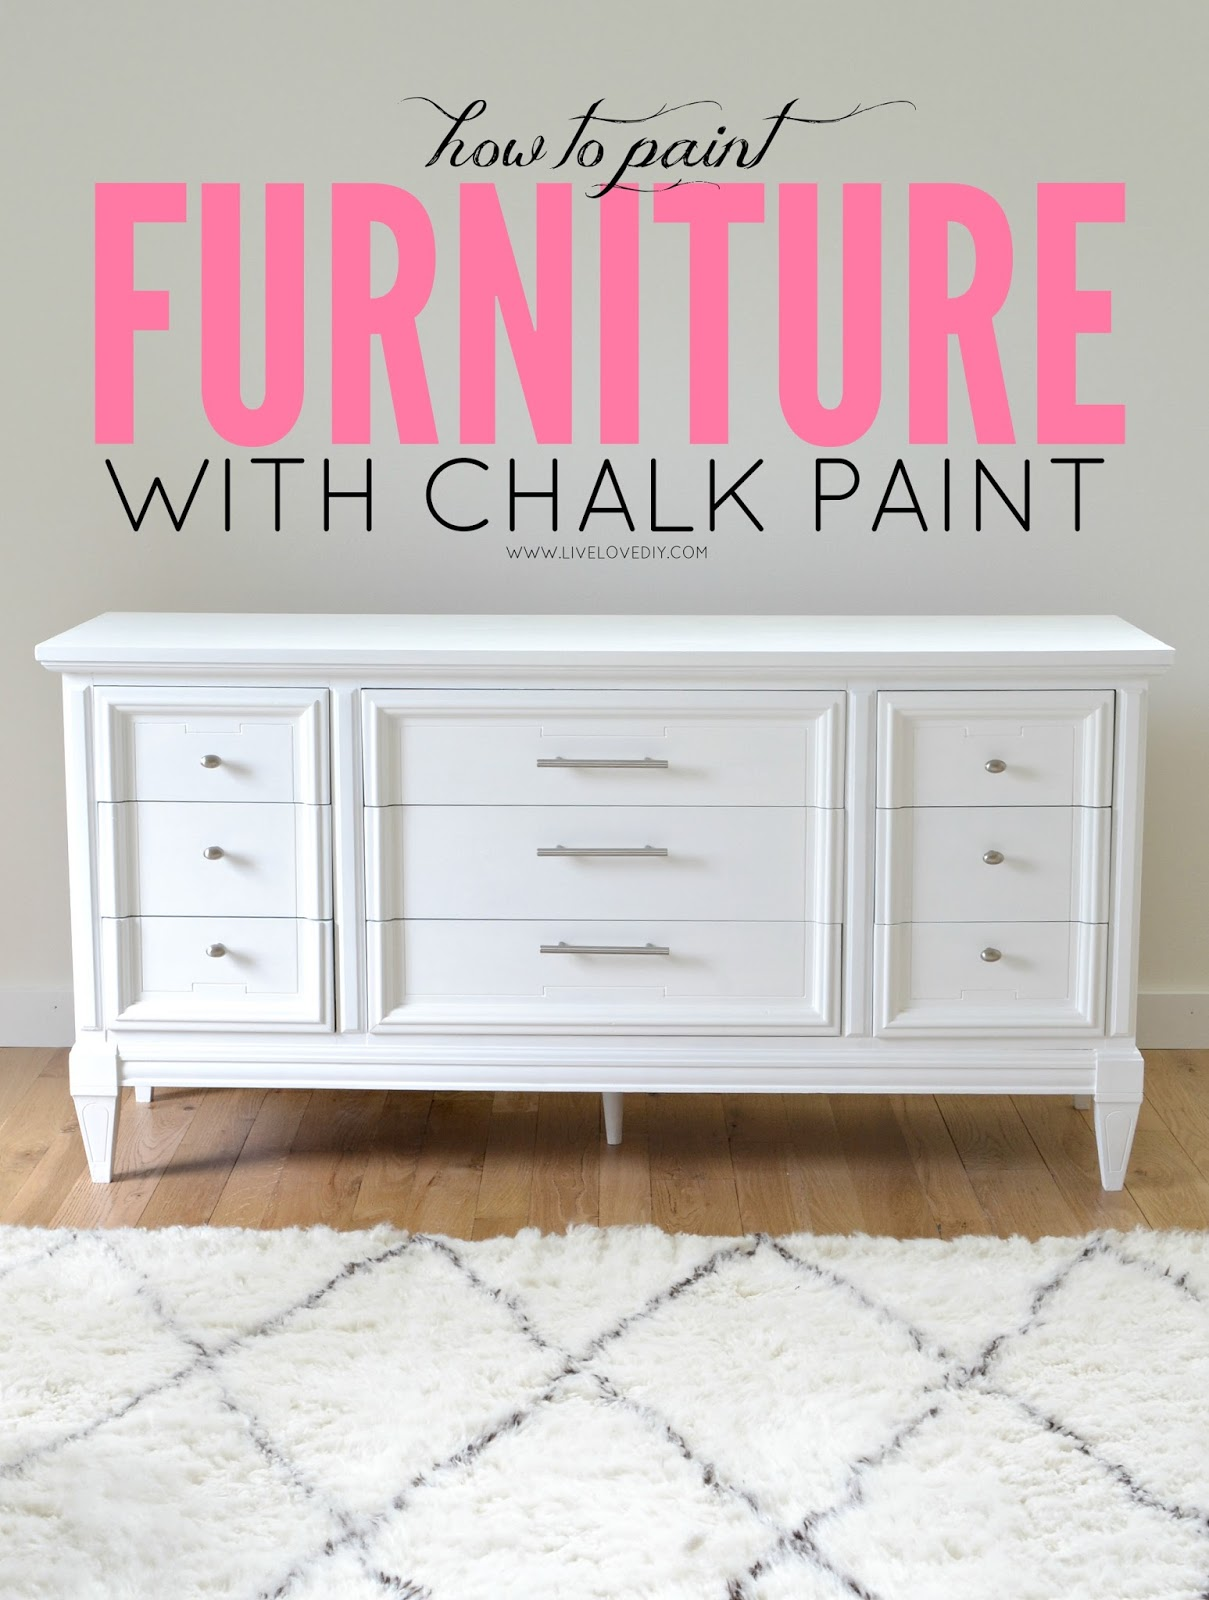 Paint Furniture Livelovediy How To Paint Furniture With Chalk Paint And How To